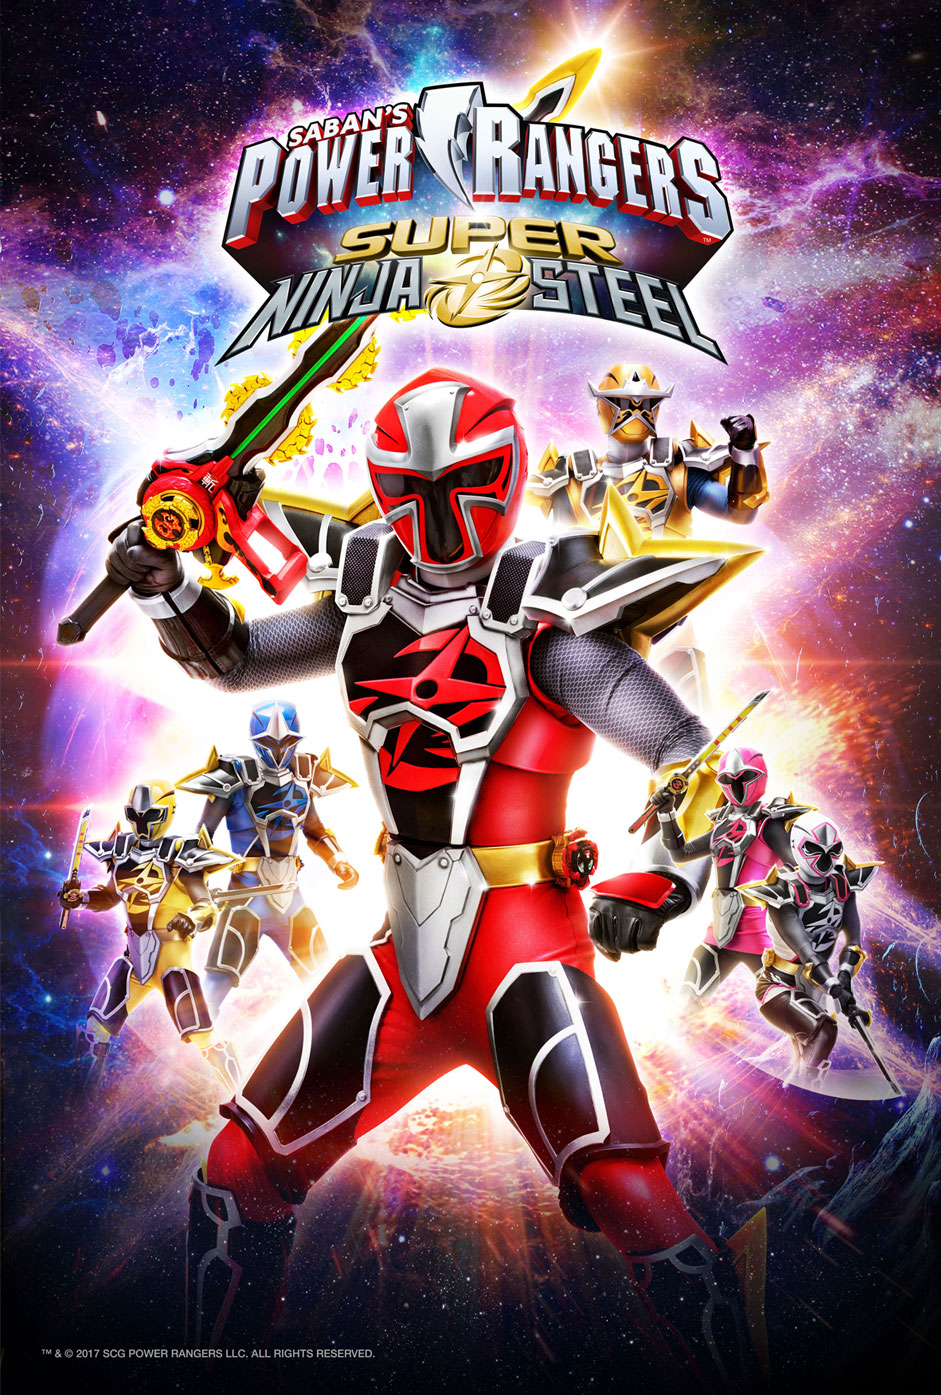 Power_Rangers_Super_Ninja_Steel_Poster.jpg